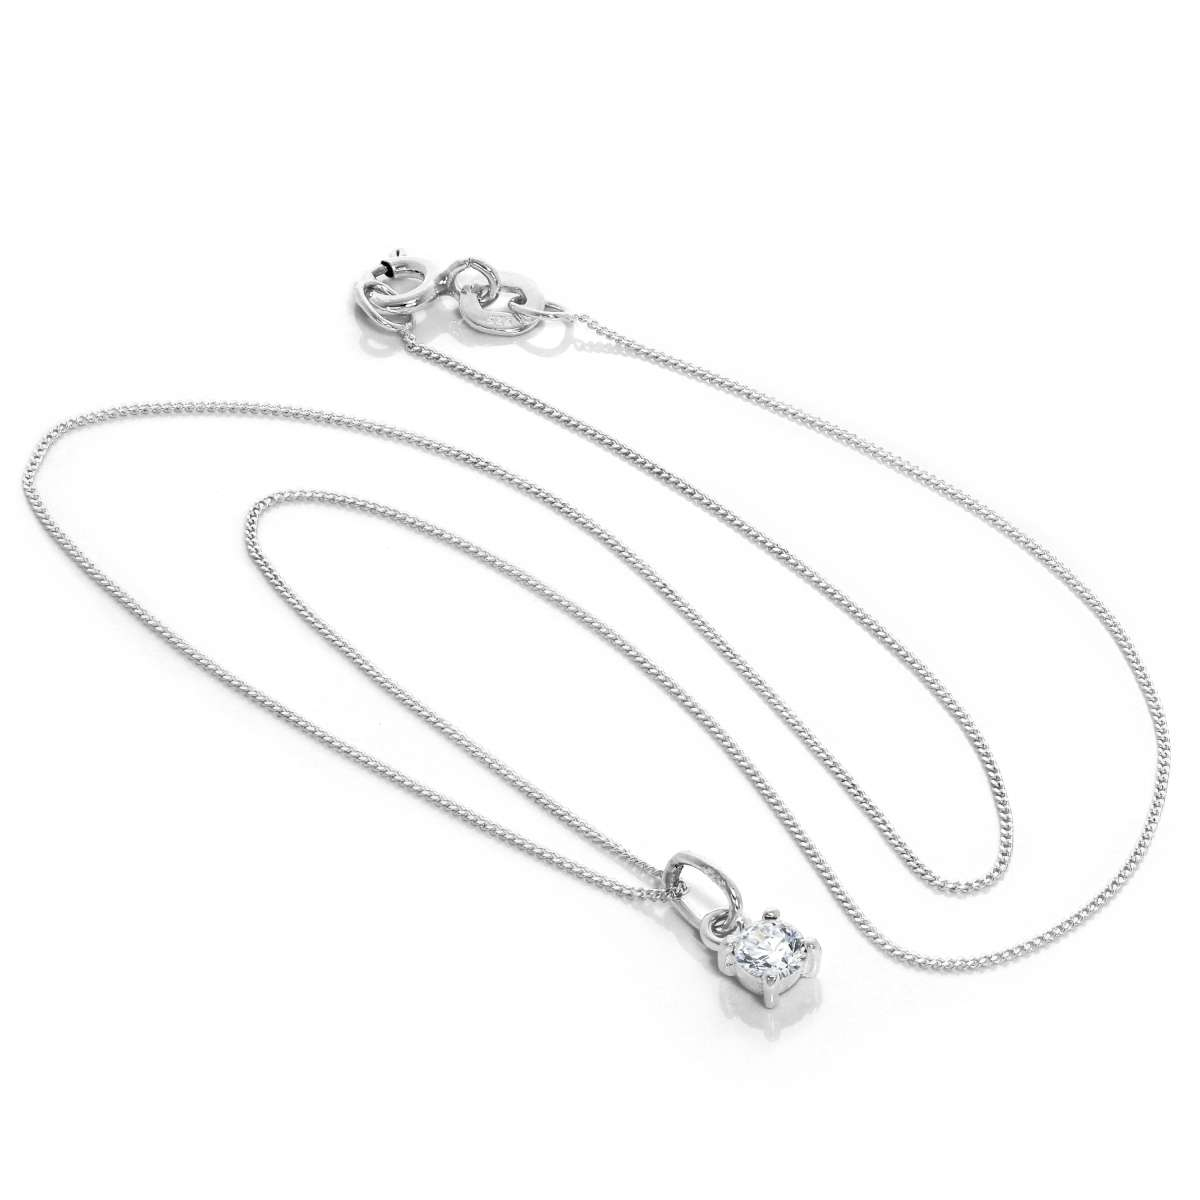 Alterative image for Sterling Silver Clear CZ April Birthstone Claw Necklace - 14 - 32 Inches